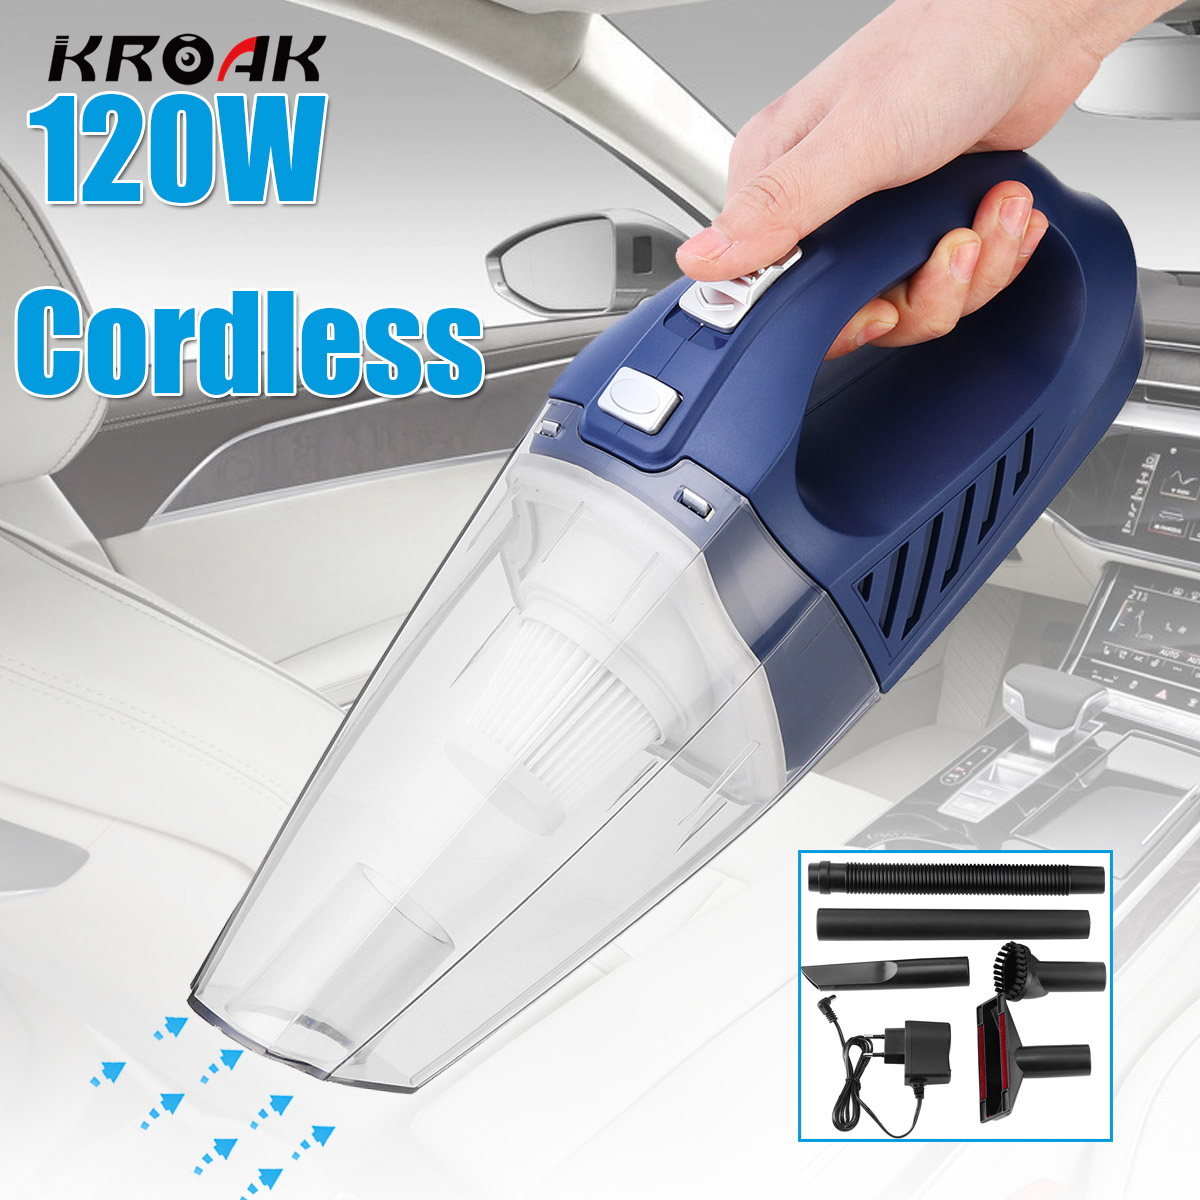 120W Wireless Handheld Car Vacuum Cleaner Cordless Portable Wet Dry Dual Use Vacuum Cleaner for Car Household Clean Appliances